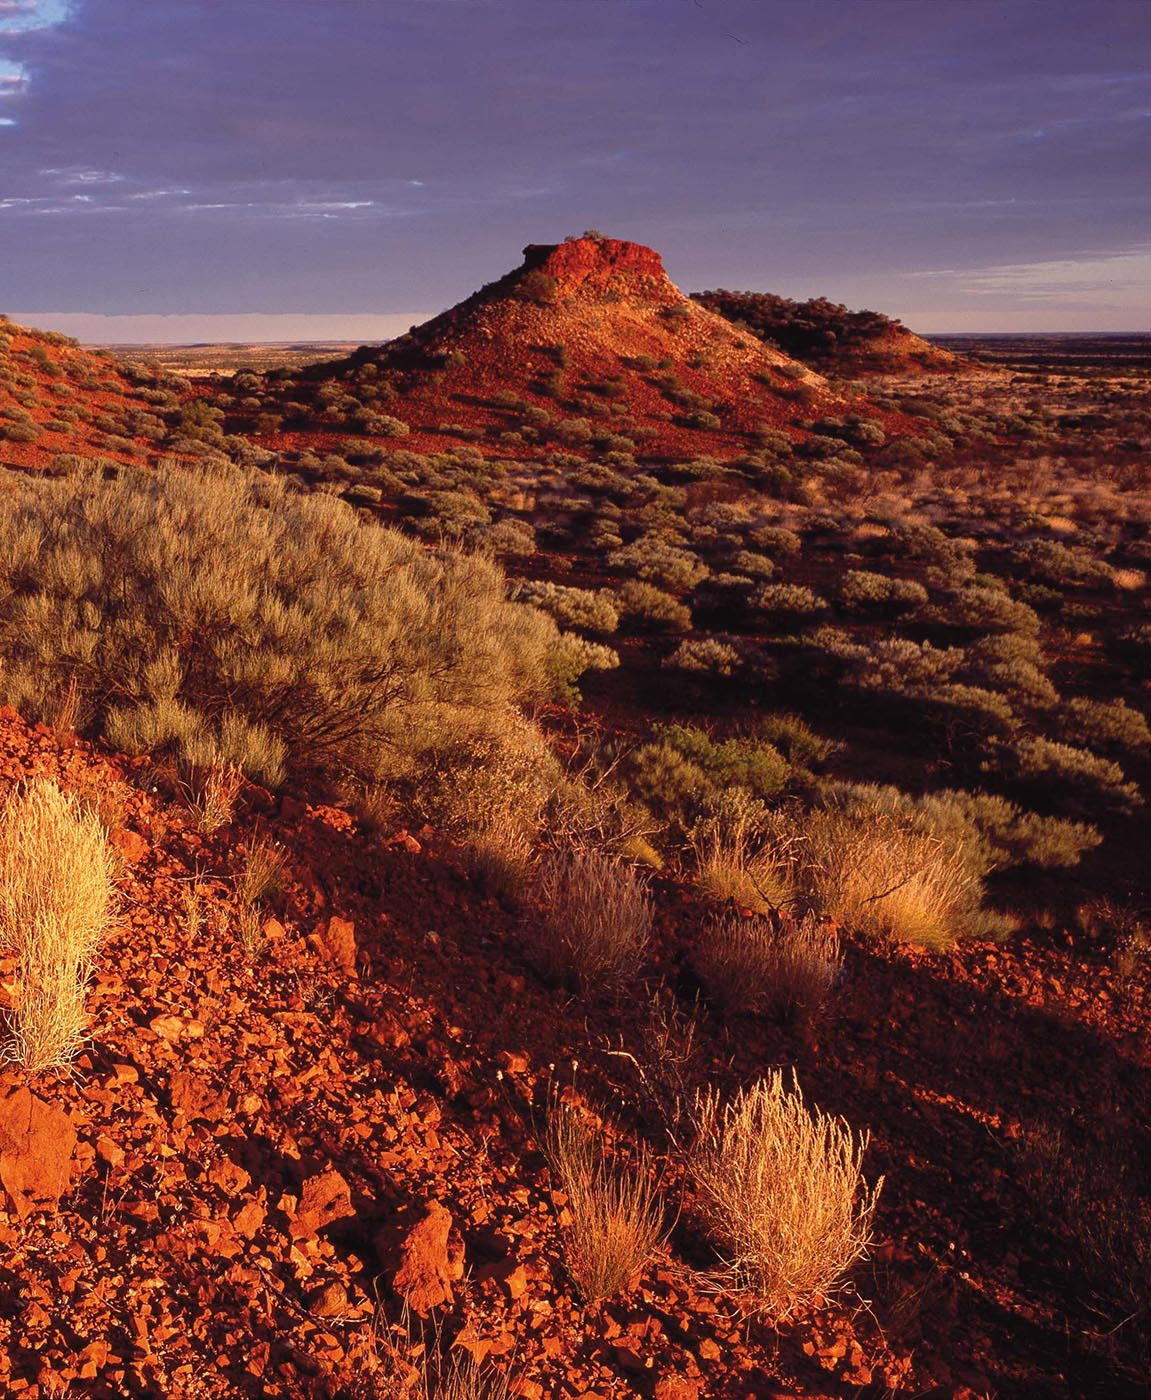 Colour photo of a desert landscape featuring a small hill and scattered plants.